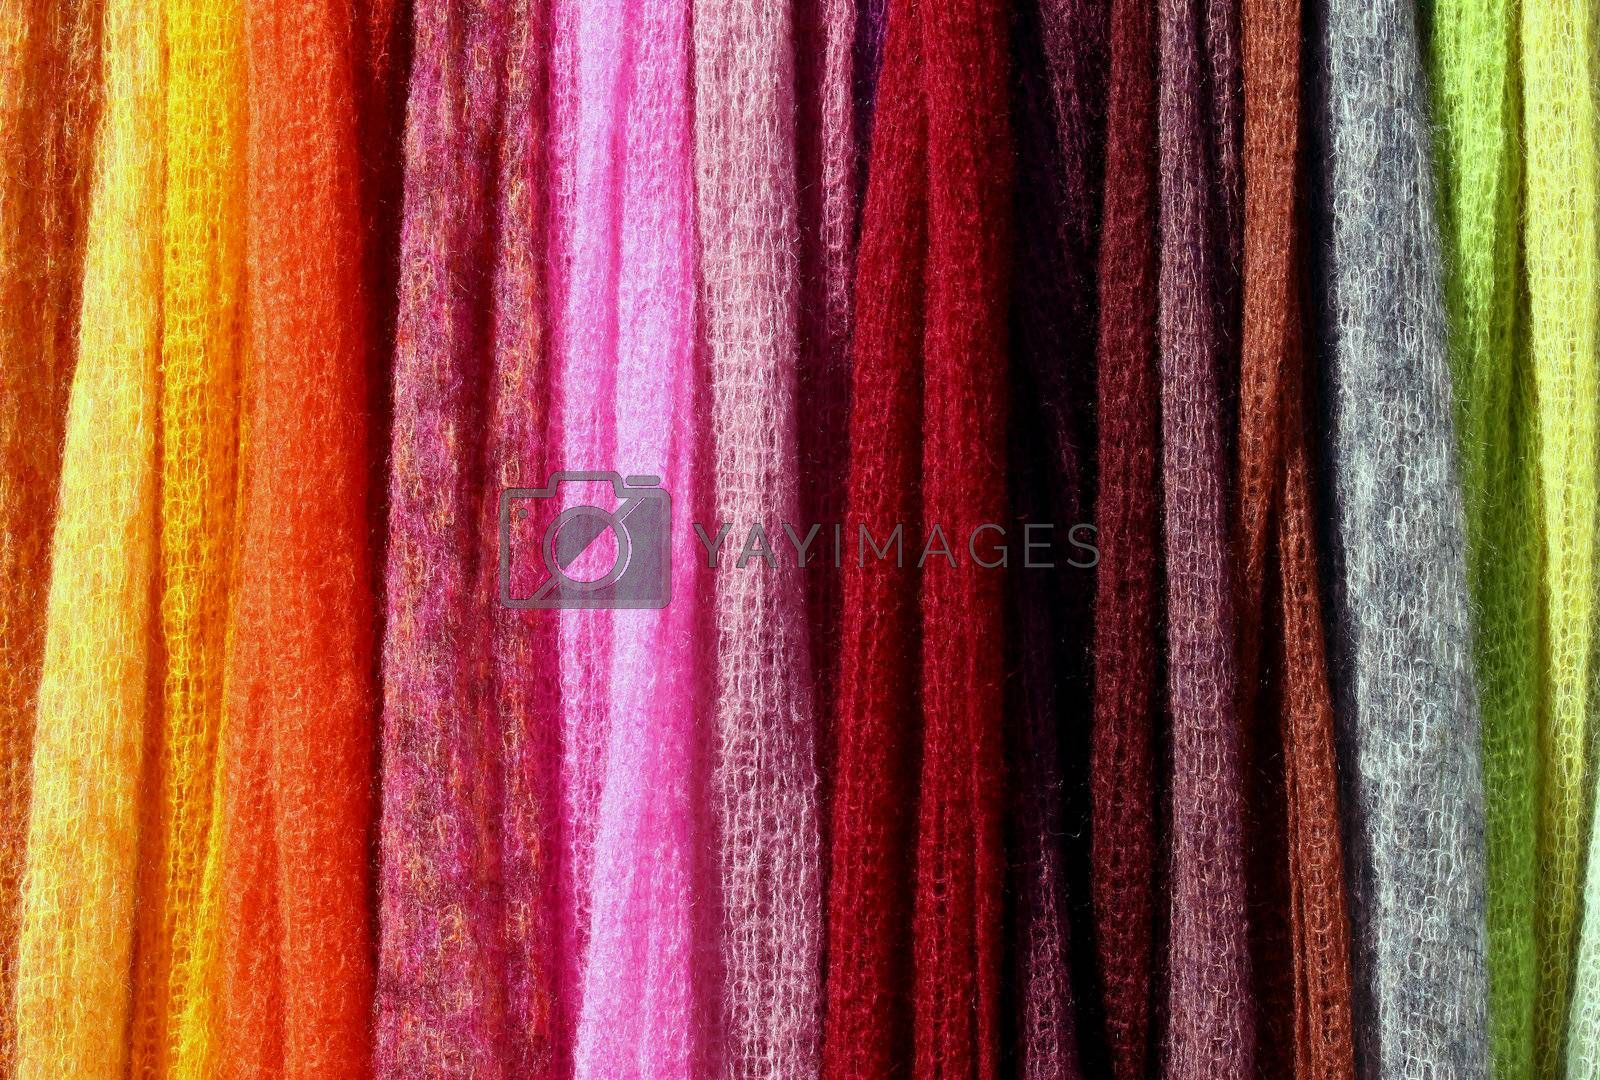 Multicolored knitted blankets, perfect stripes background